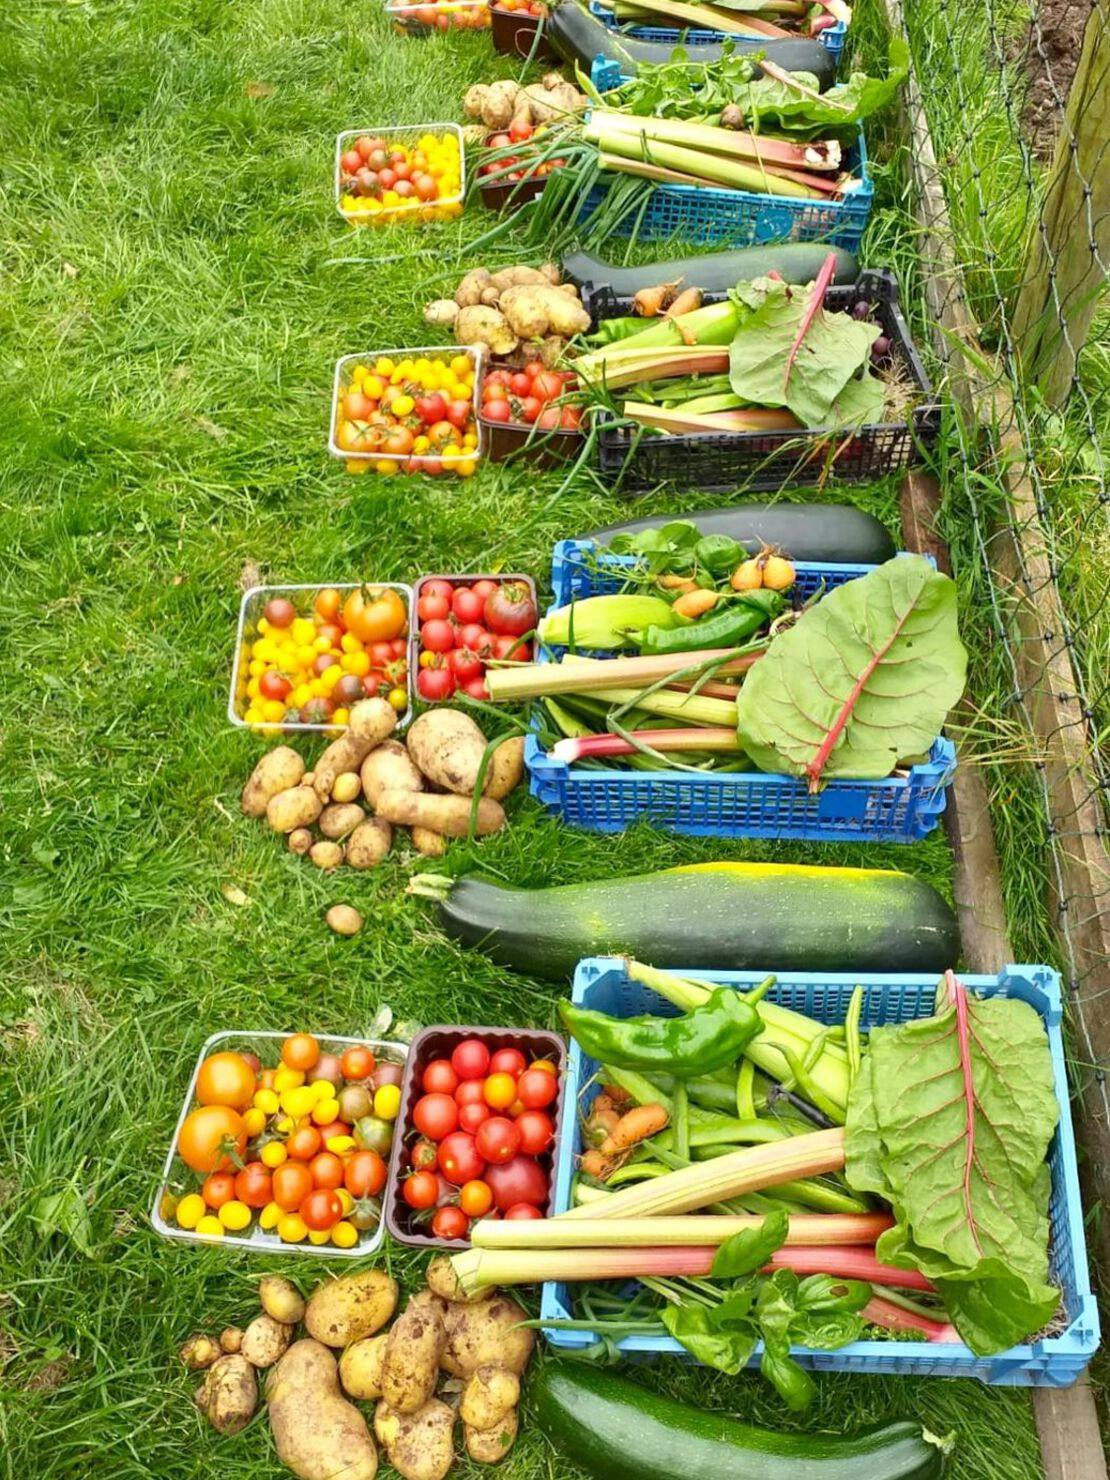 Wonderful veg shares awaiting collection.